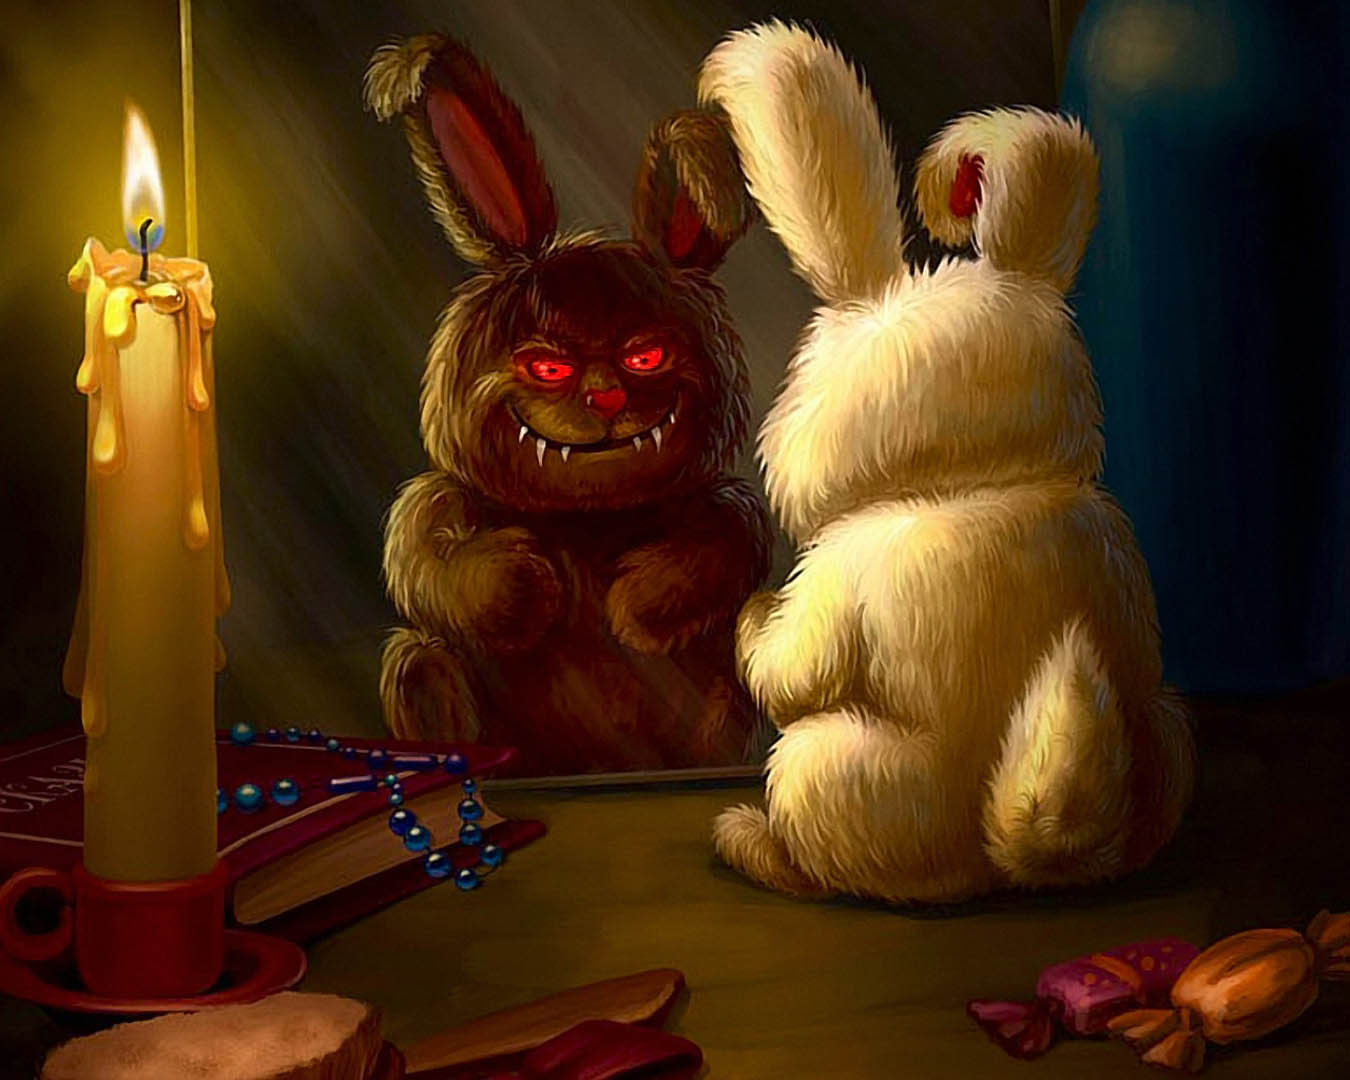 https://i1.wp.com/ayay.co.uk/backgrounds/fantasy/monsters/possessed-demon-rabbit.jpg